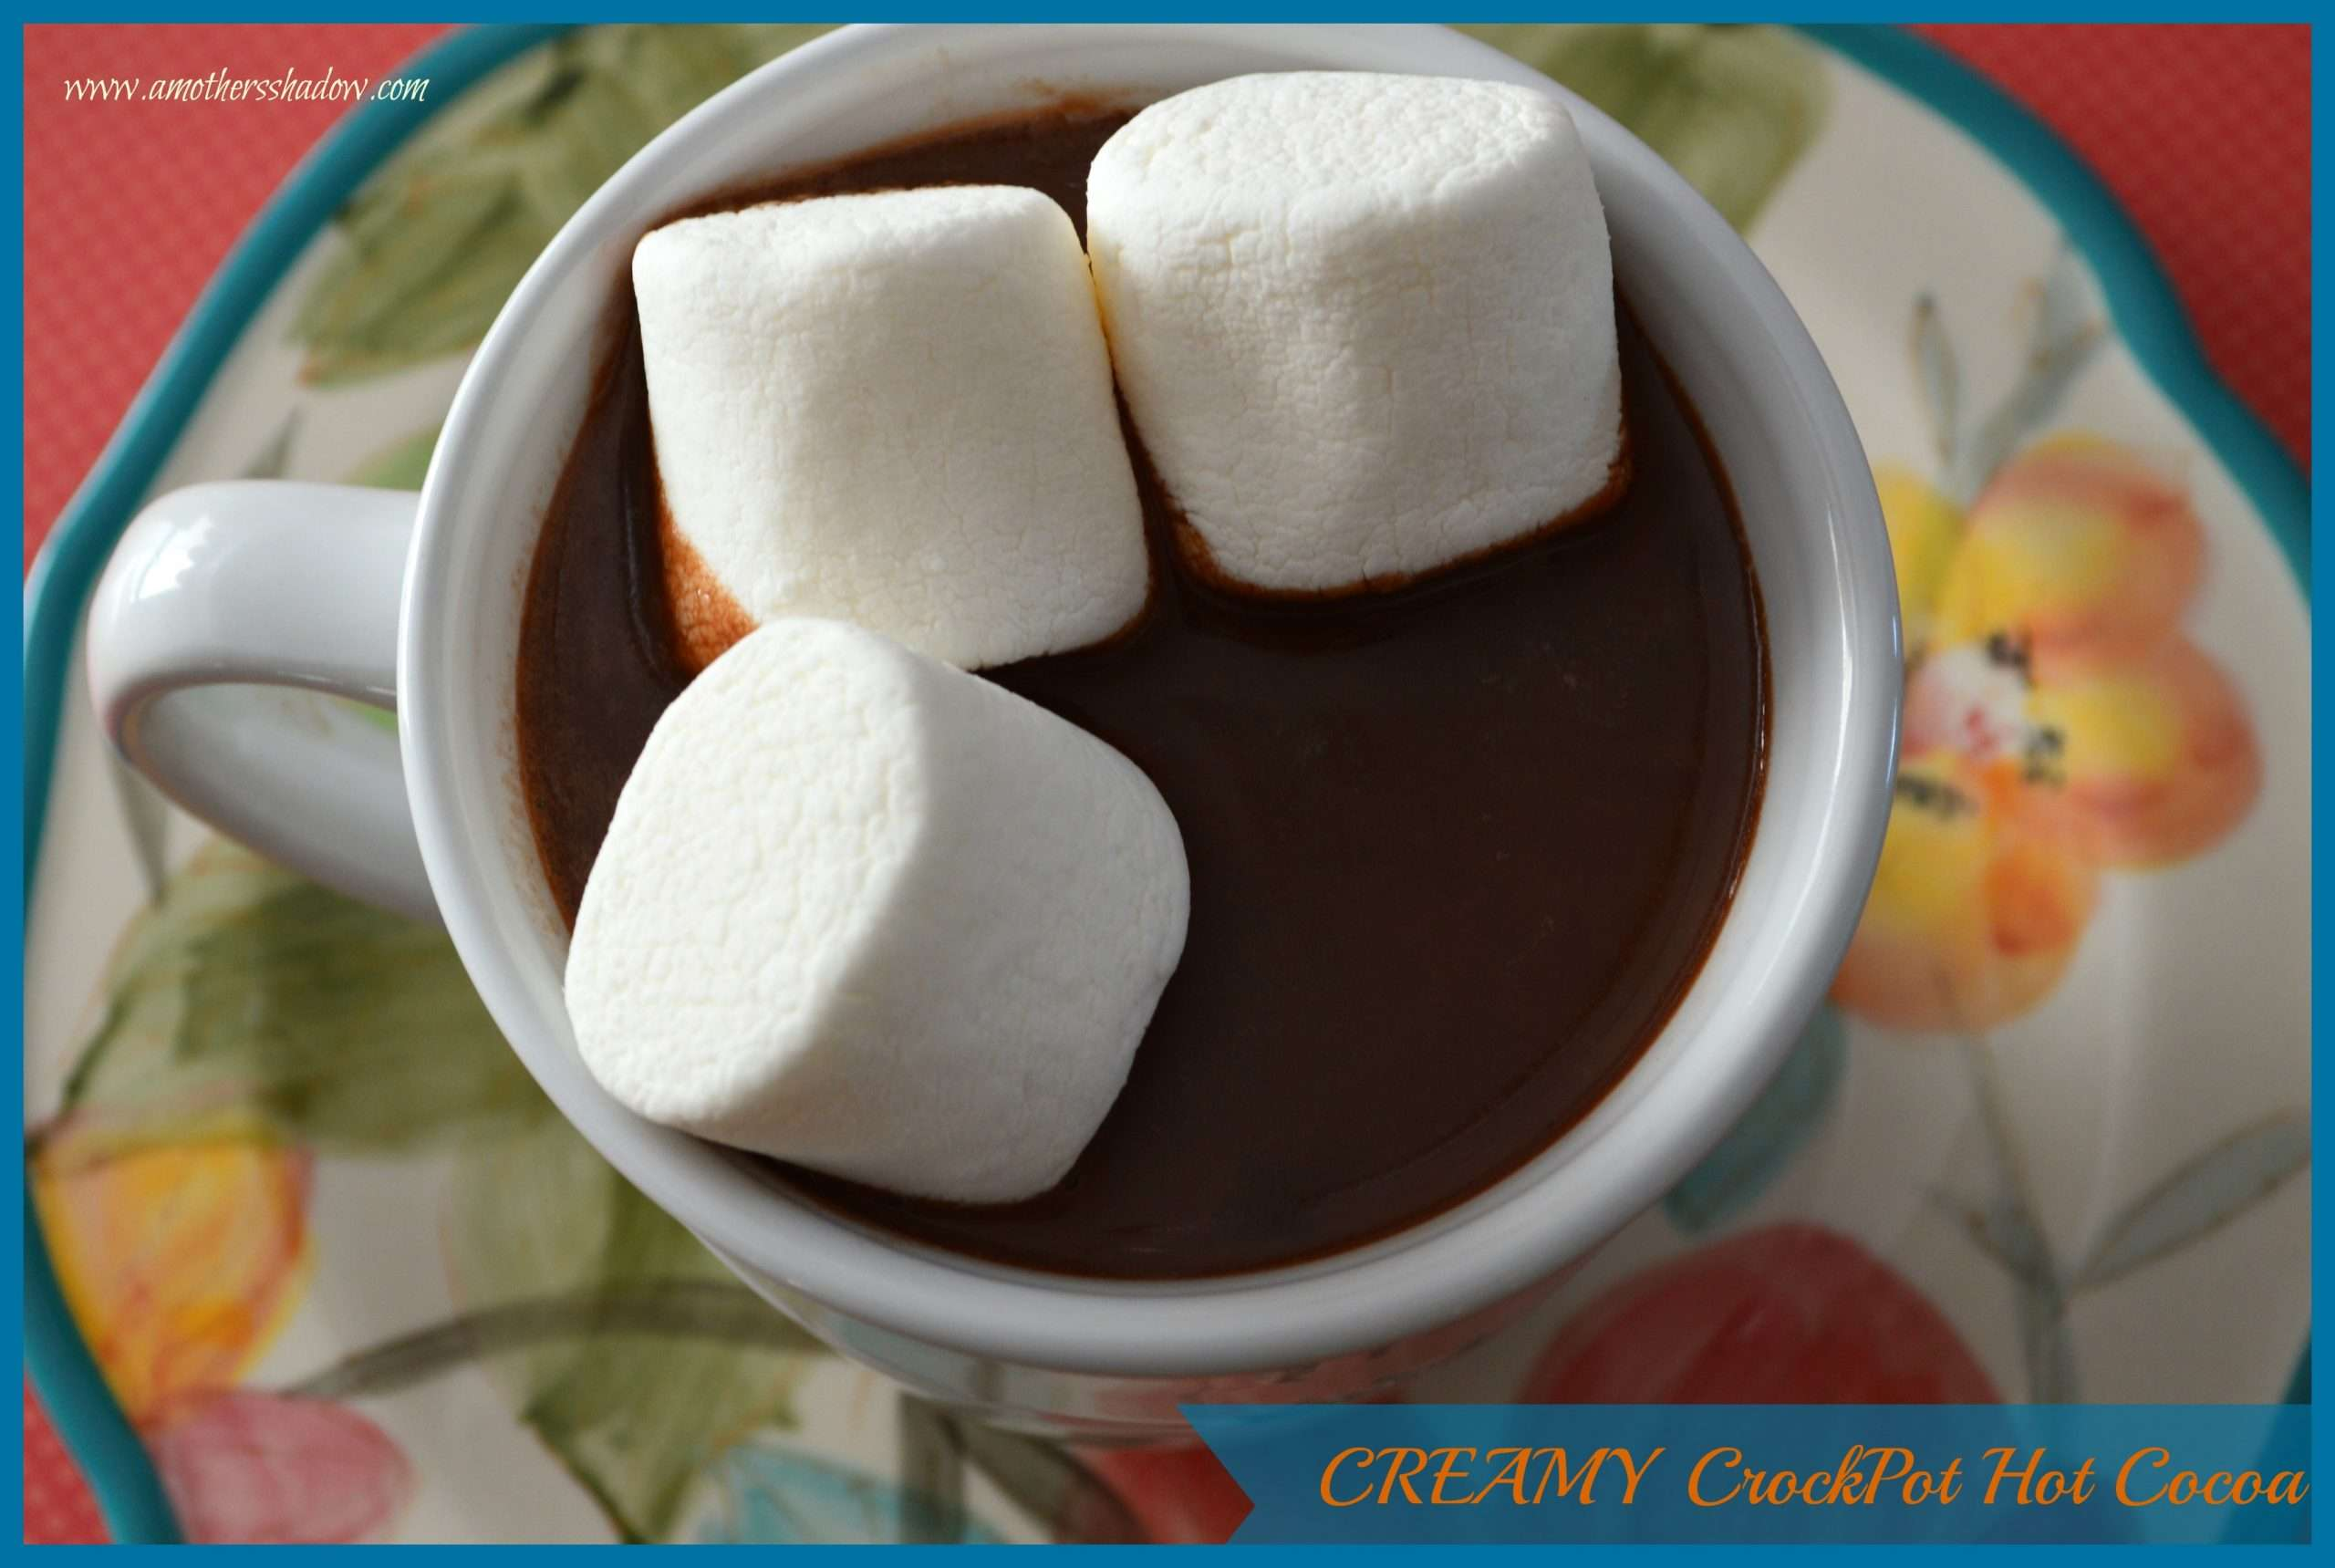 Best Creamy Crock Pot Hot Cocoa